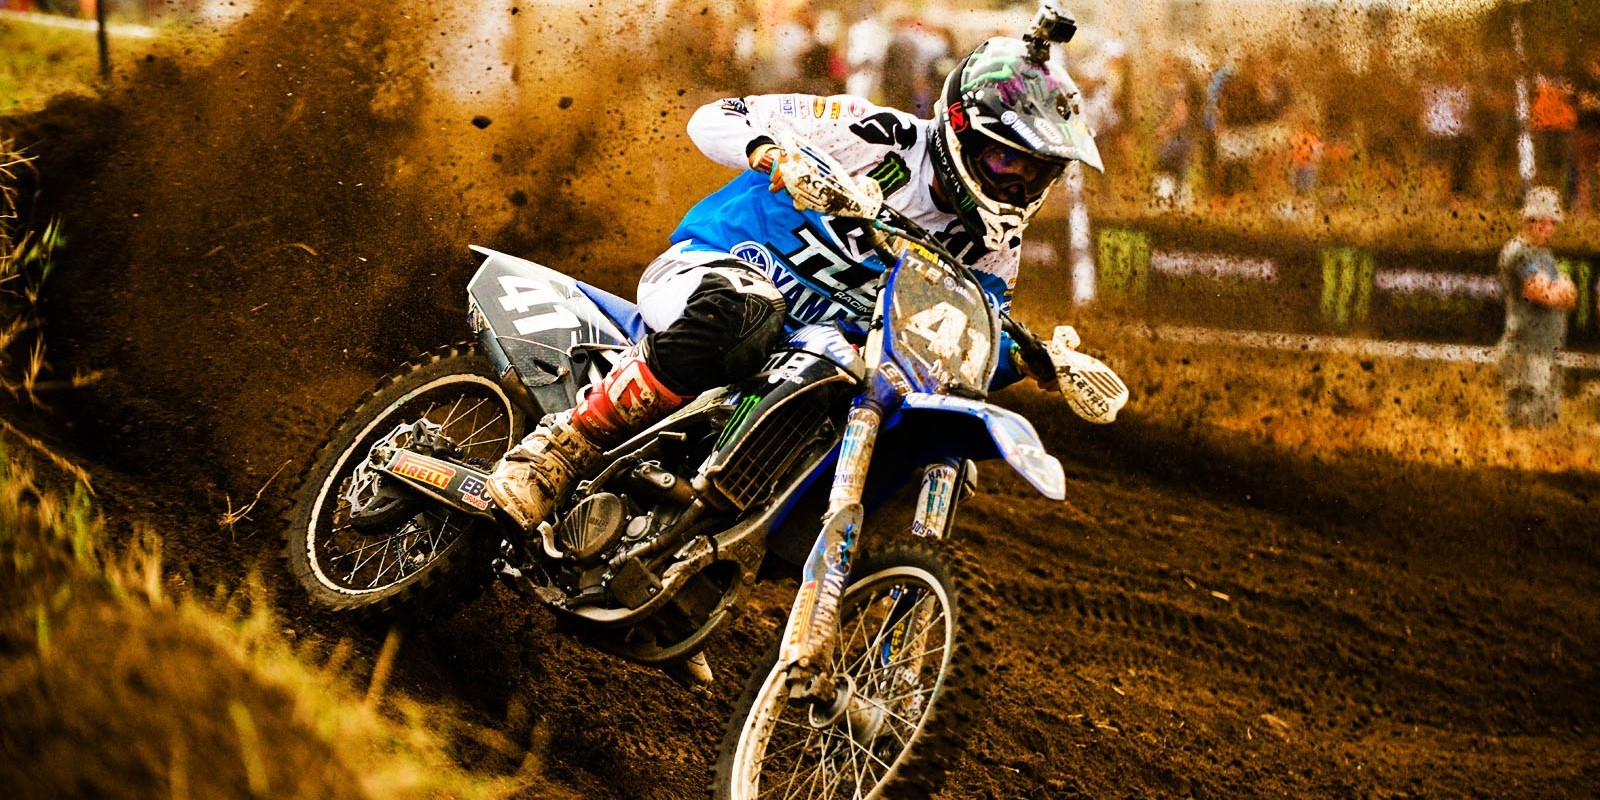 Tristan Purdon at Round 4 of South Africa MX Nationals in Springfield, Durban, South Africa